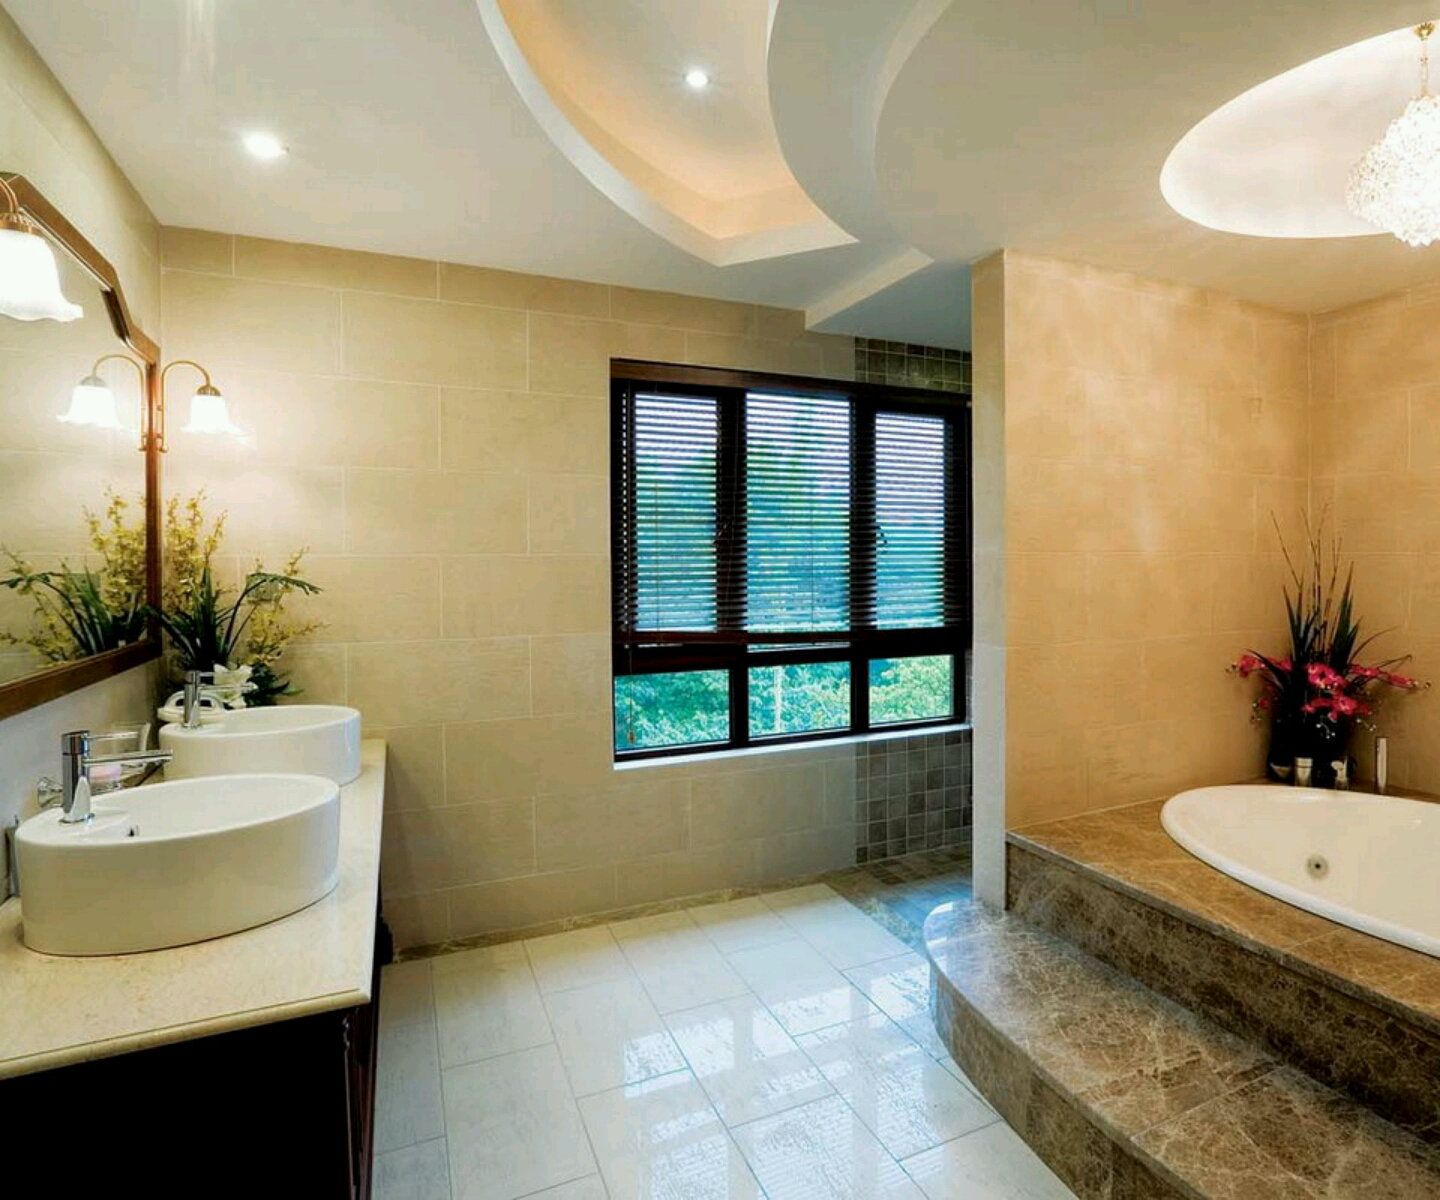 New home designs latest ultra modern washroom designs ideas for Washroom design